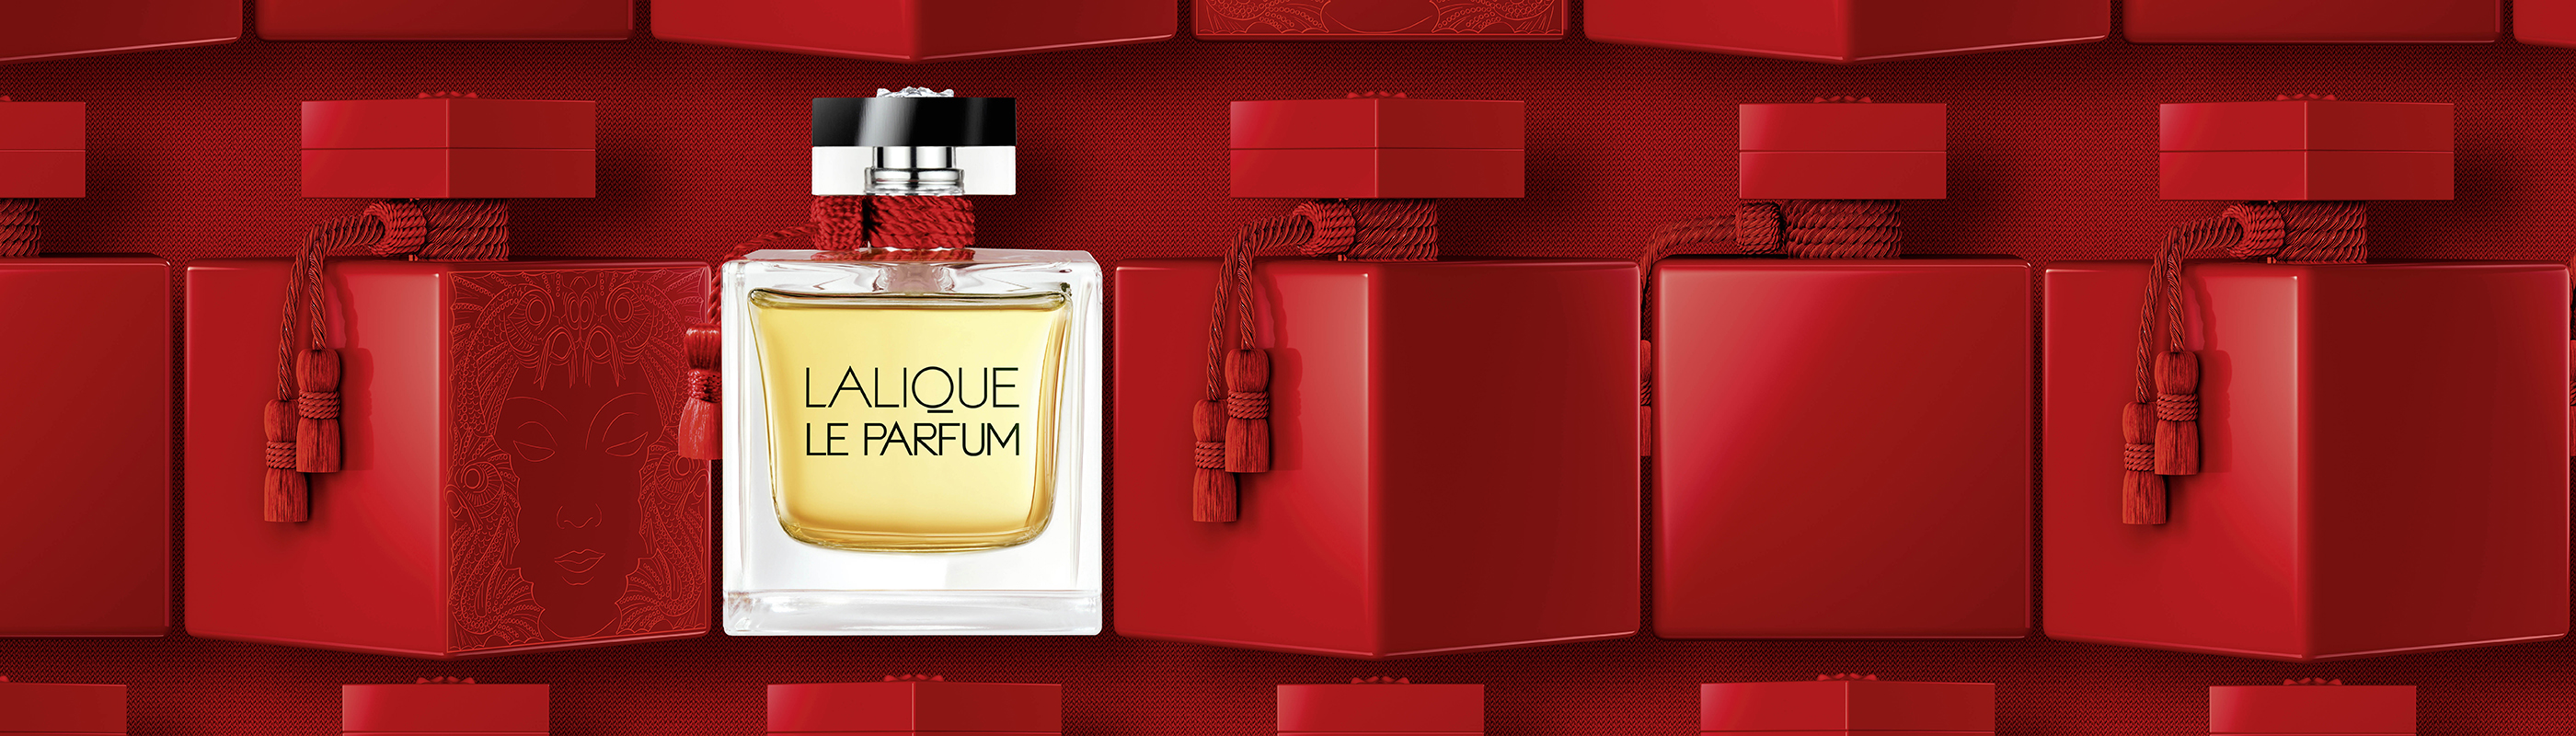 LALIQUE LE PARFUM fragrance | Perfume for women | Lalique Parfums | Lalique